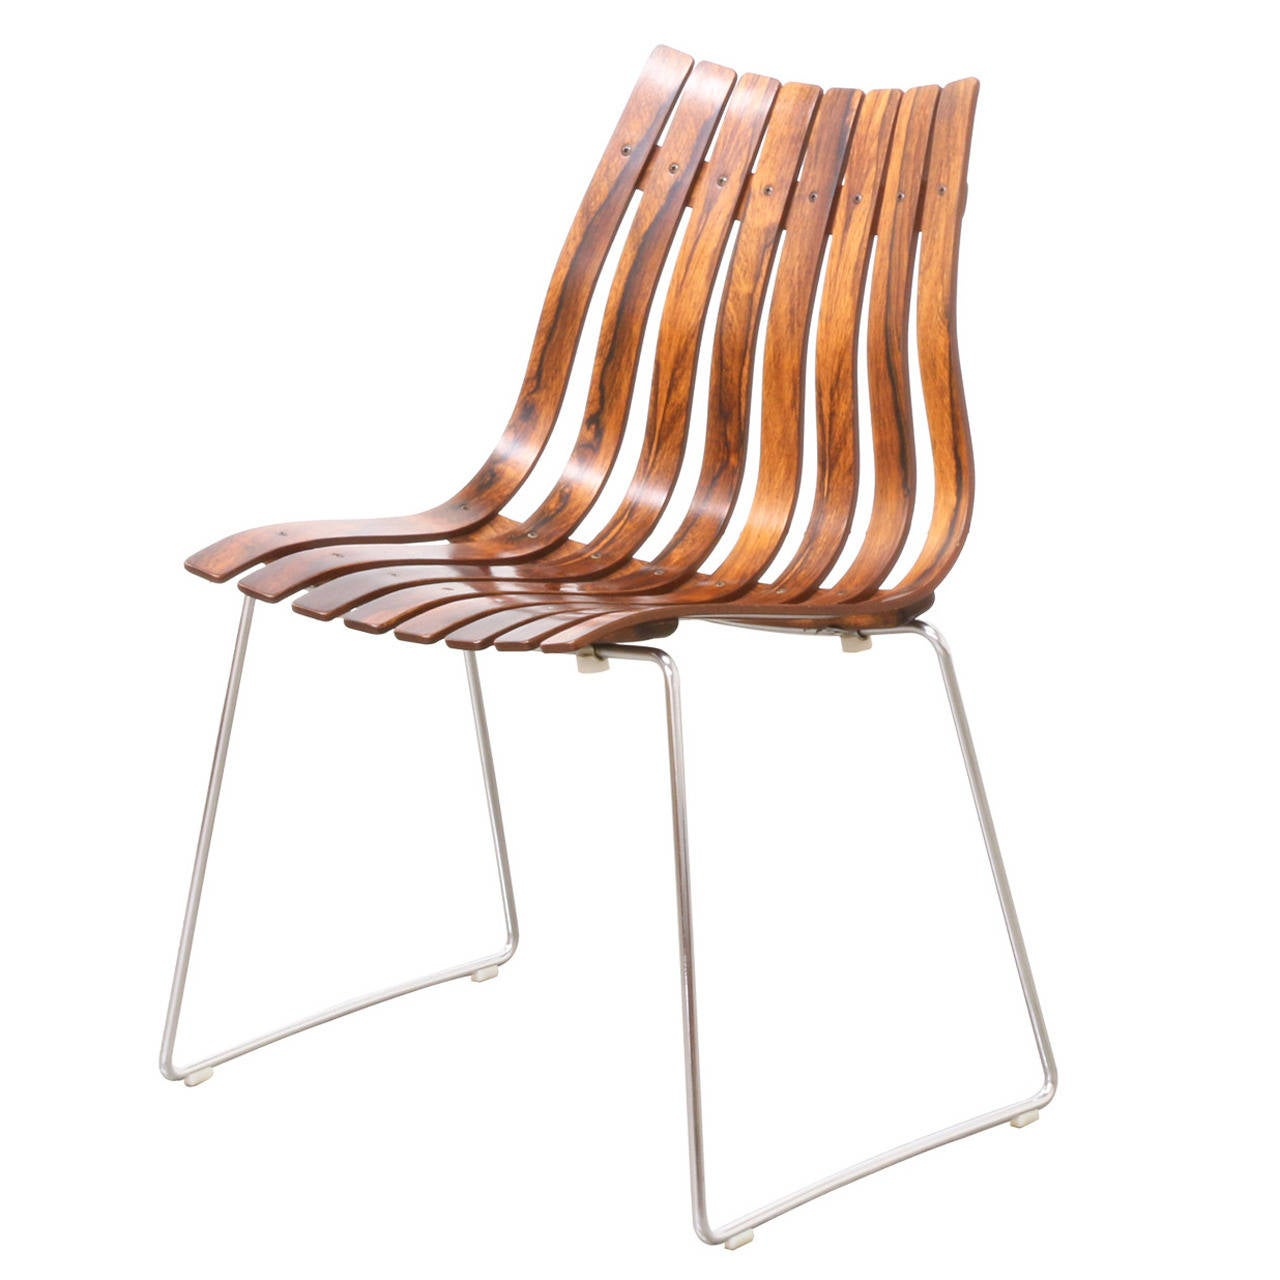 Hans Brattrud Scandia Rosewood Chair for Hove Mobler at 1stdibs